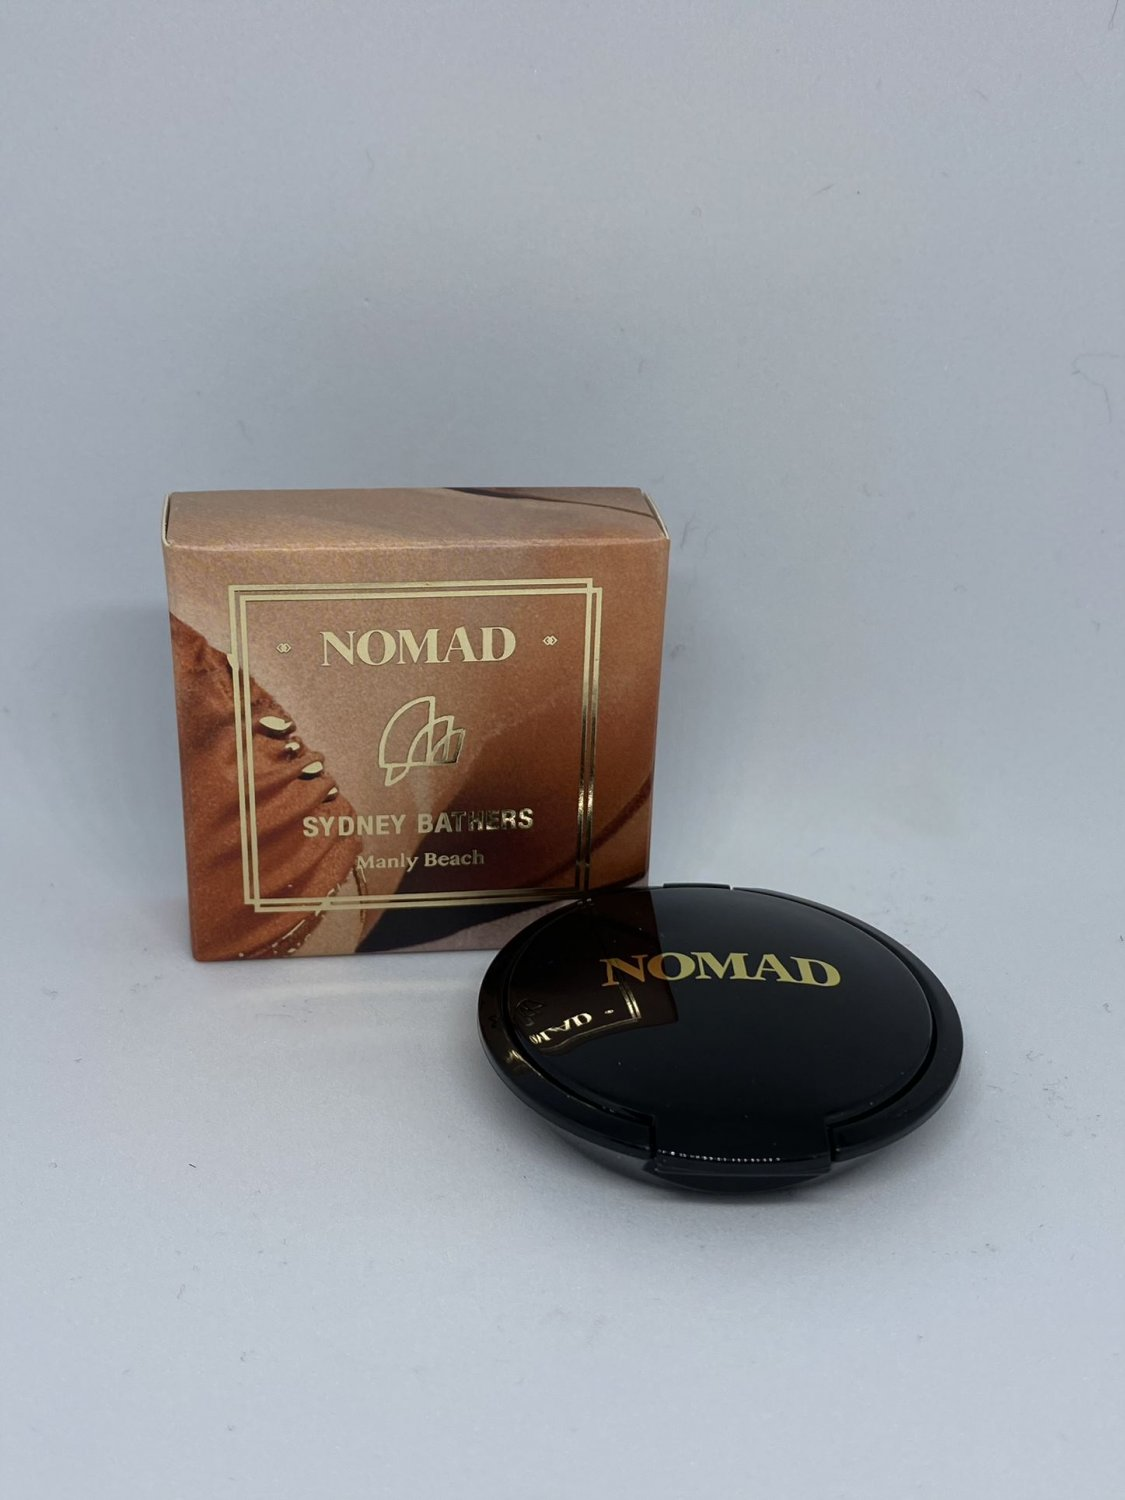 Nomad x Sydney Bathers Collection Kiss of Sun Bronzer & Contour Travel Size Manly Beach